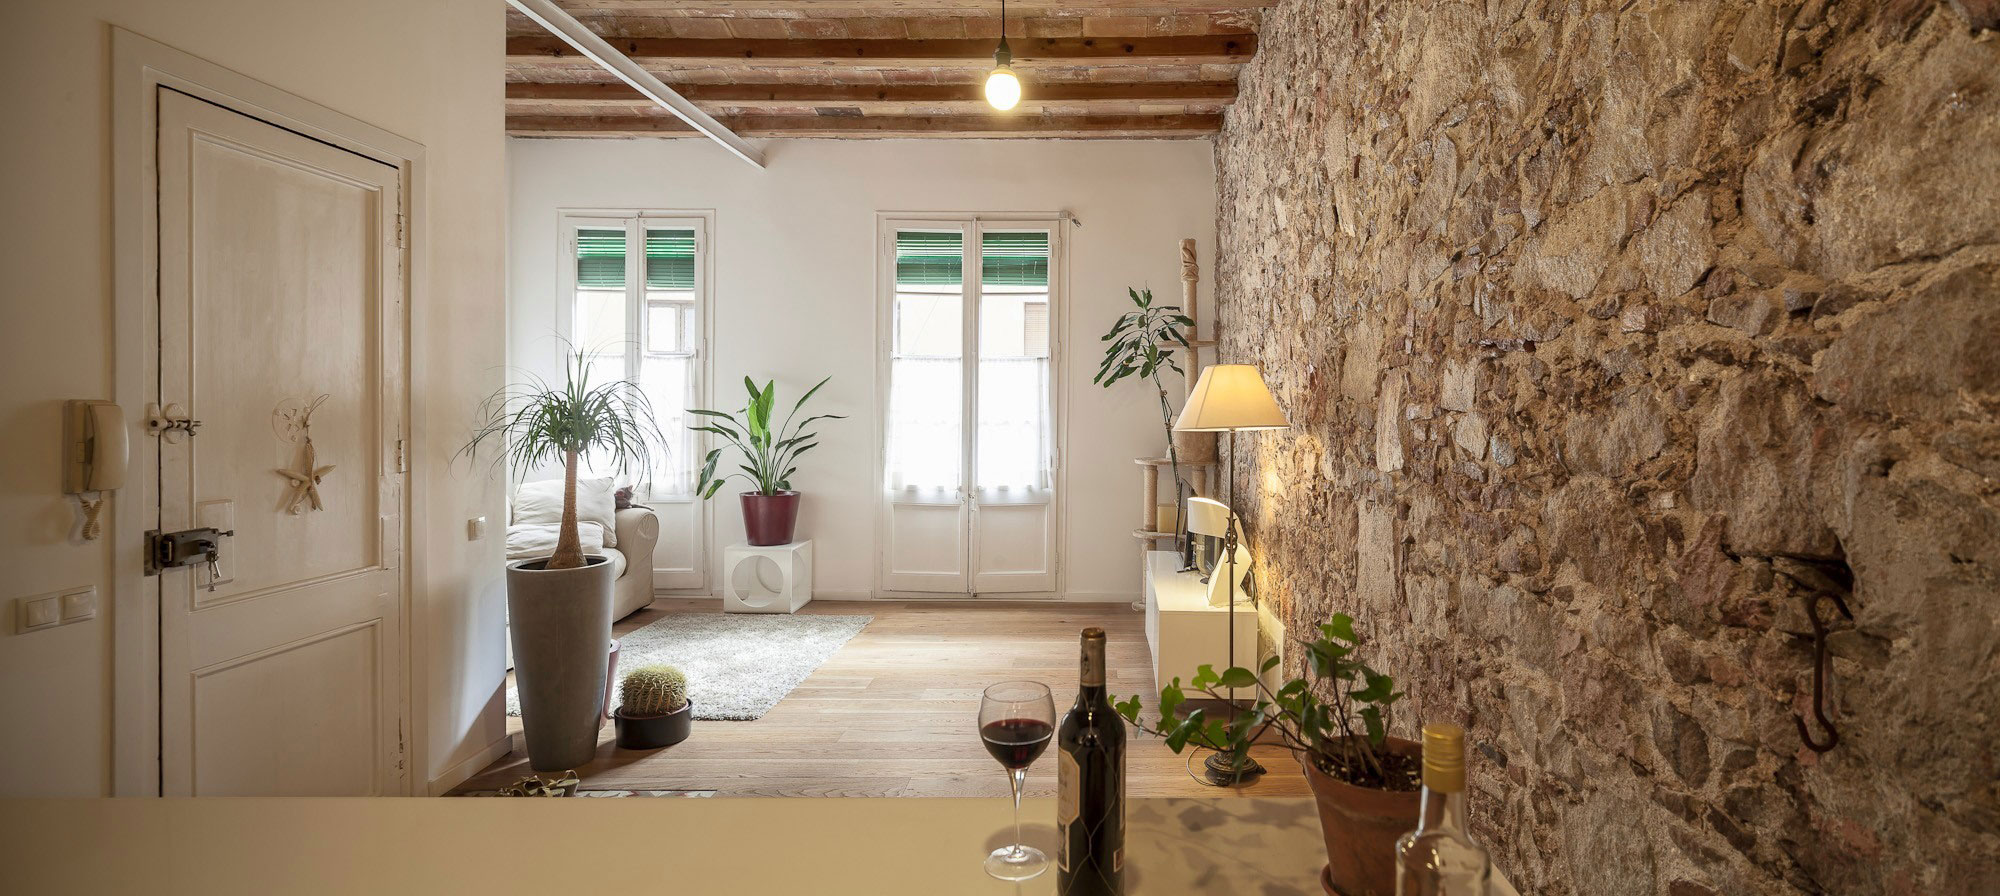 Modern apartment renovation revives its 19th century character - Cocinas de ladrillo rustico ...